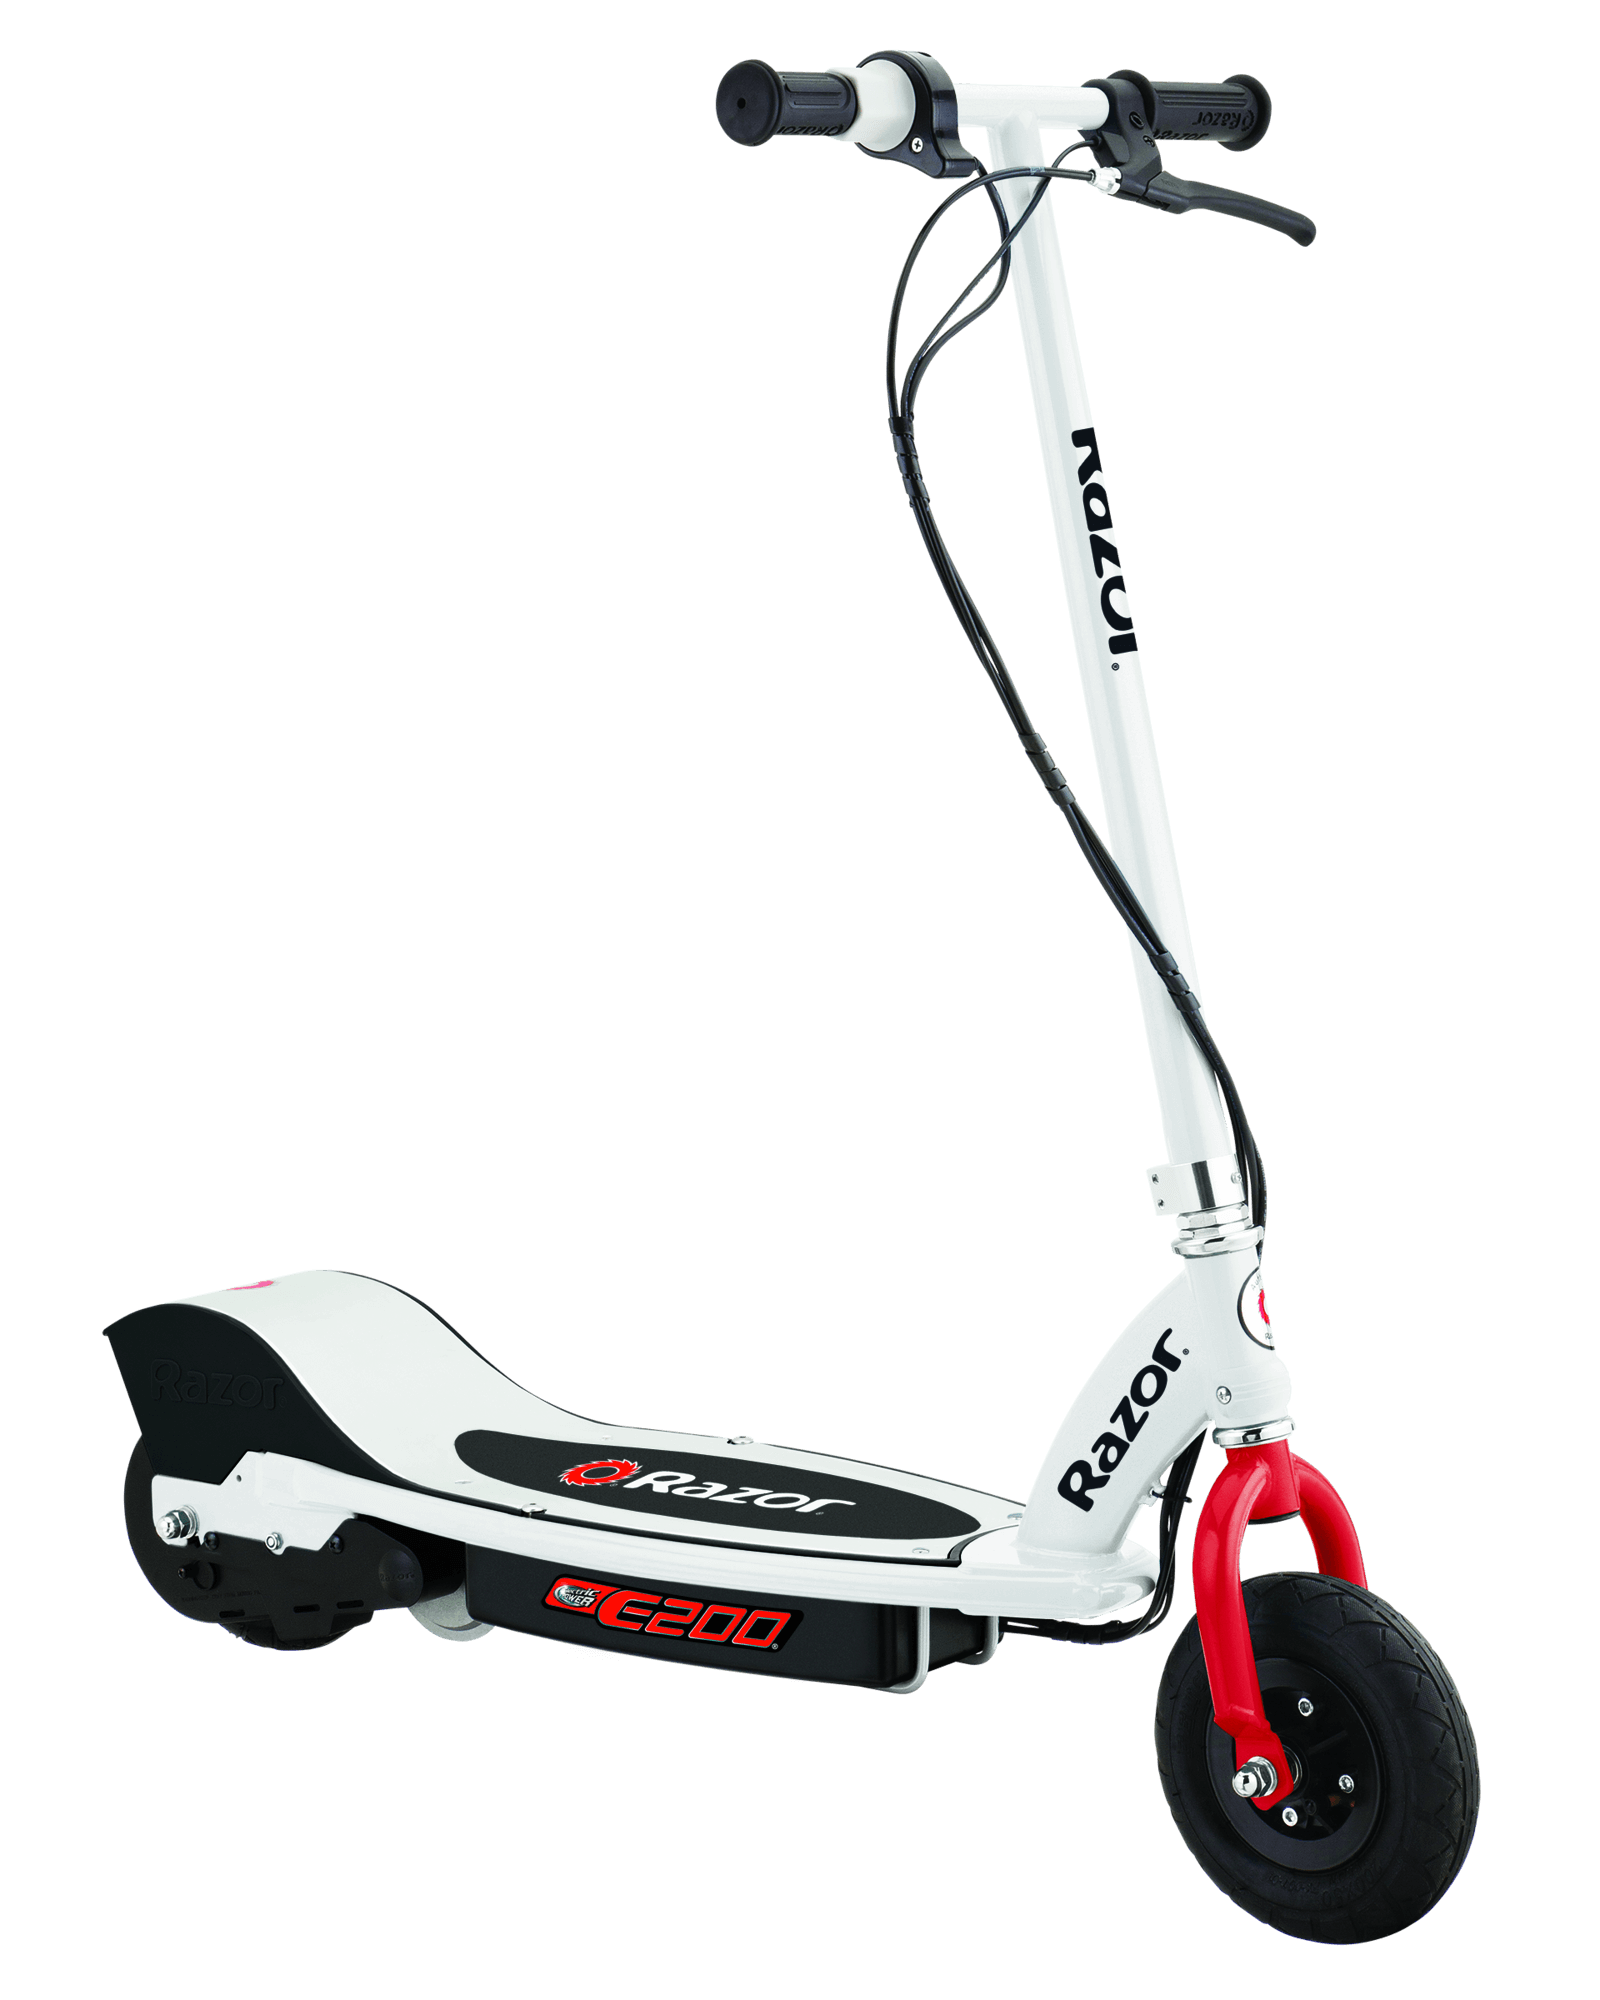 E200 Electric Scooter.